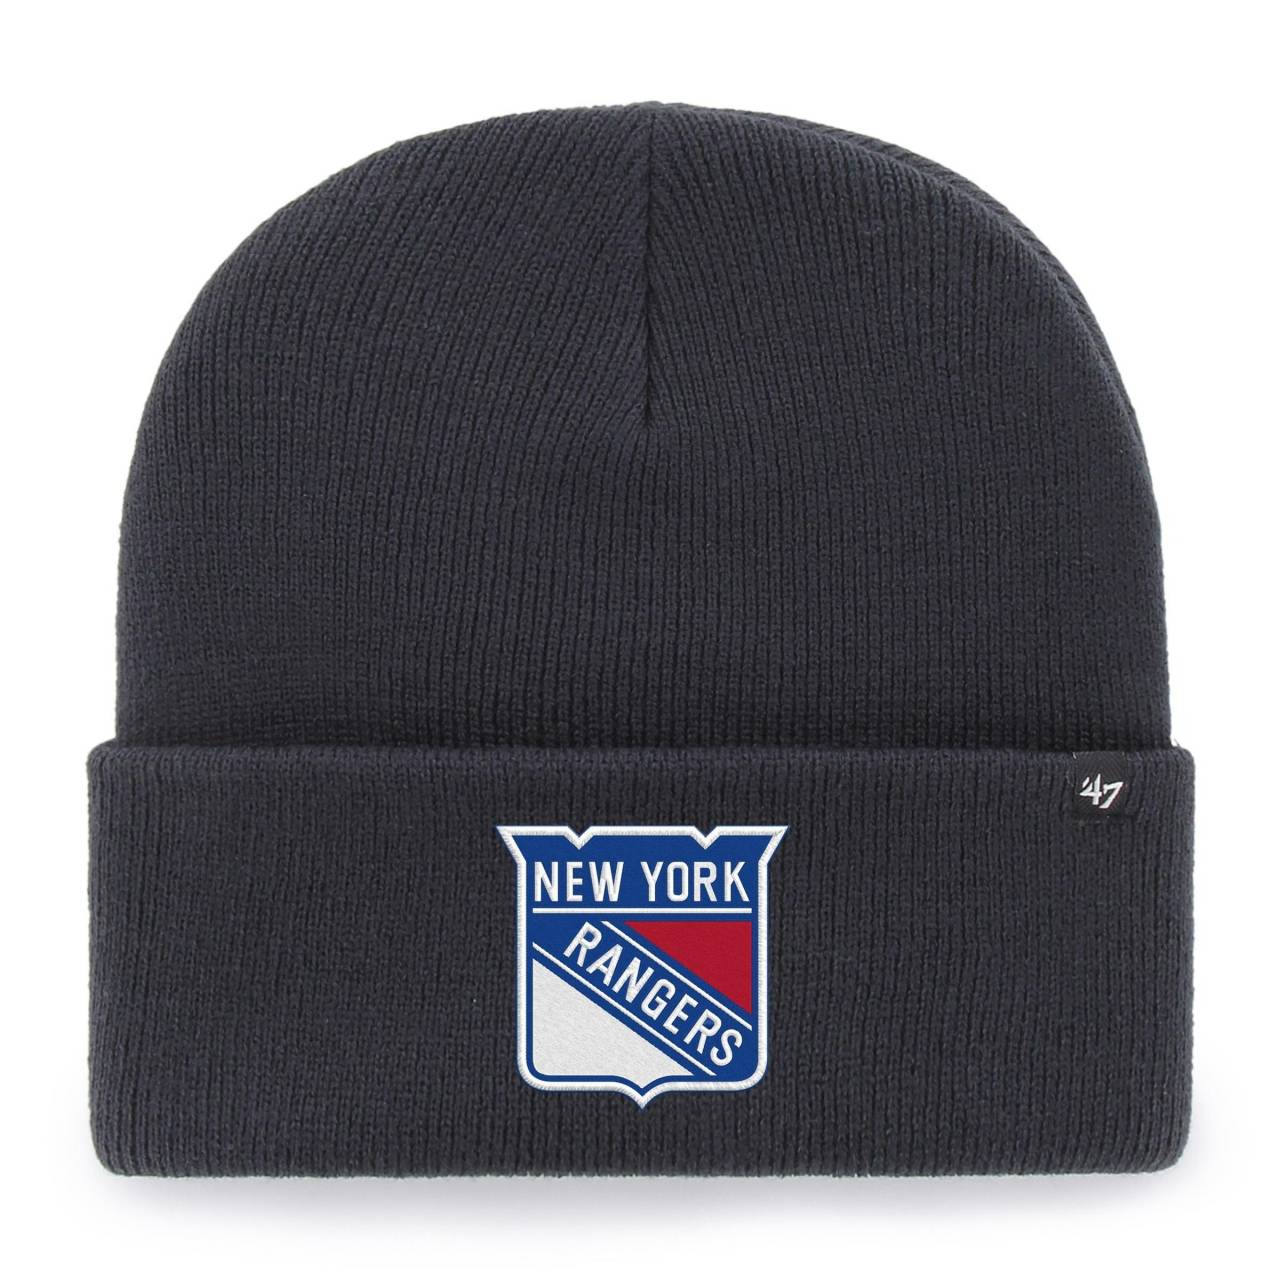 NHL NEW YORK RANGERS HYAMAKER ´47 CUFF KNIT NAVY